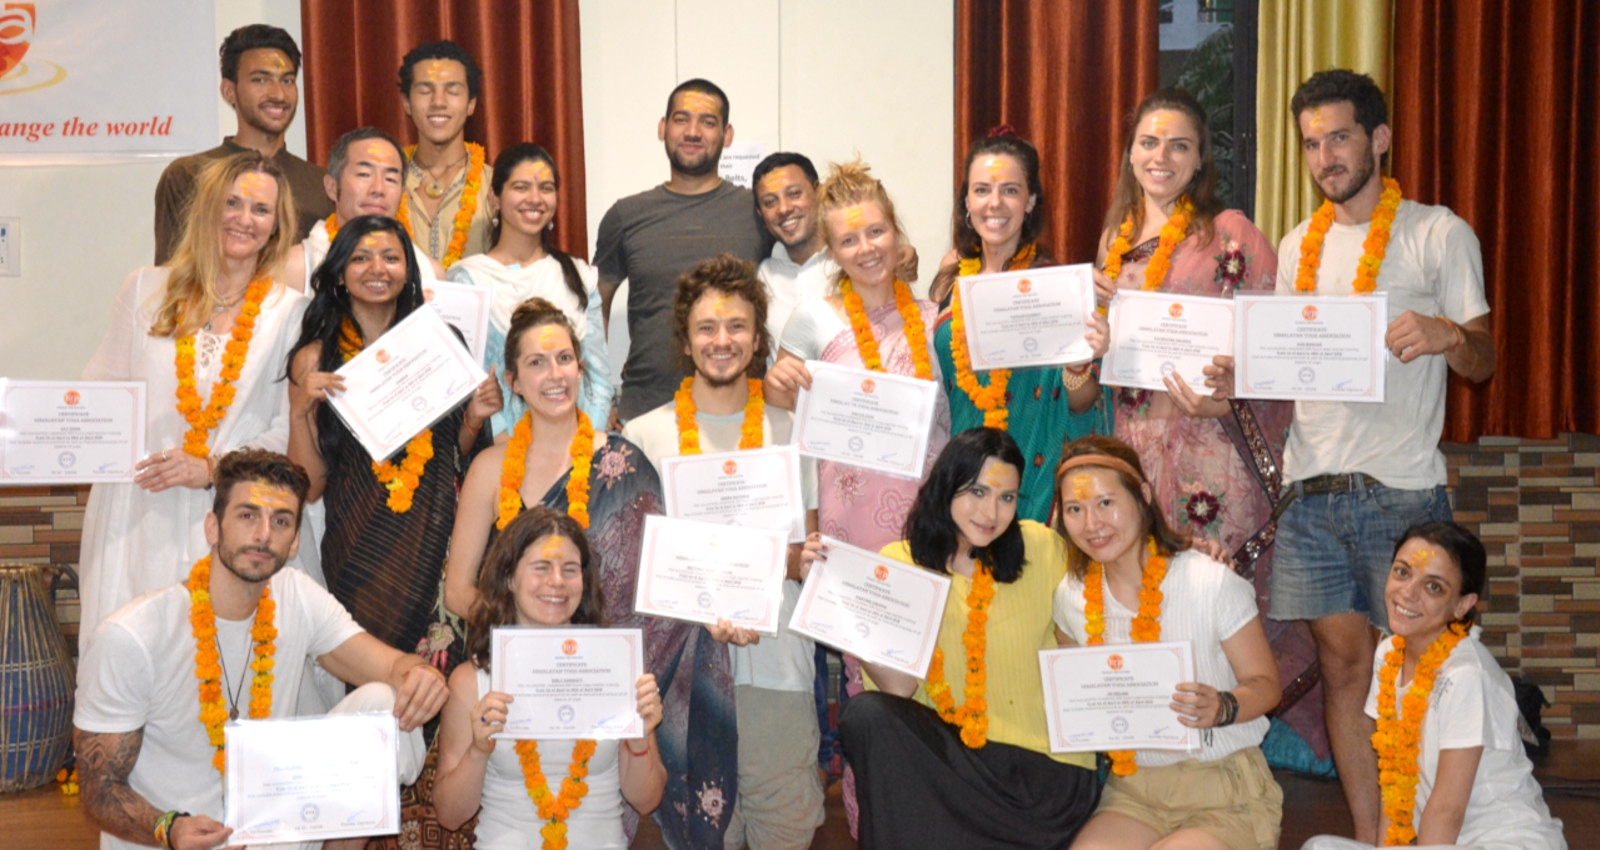 Best Yoga Teacher Training School in Rishikesh - Yoga in Rishikesh - Yoga Teacher Training in Rishikesh